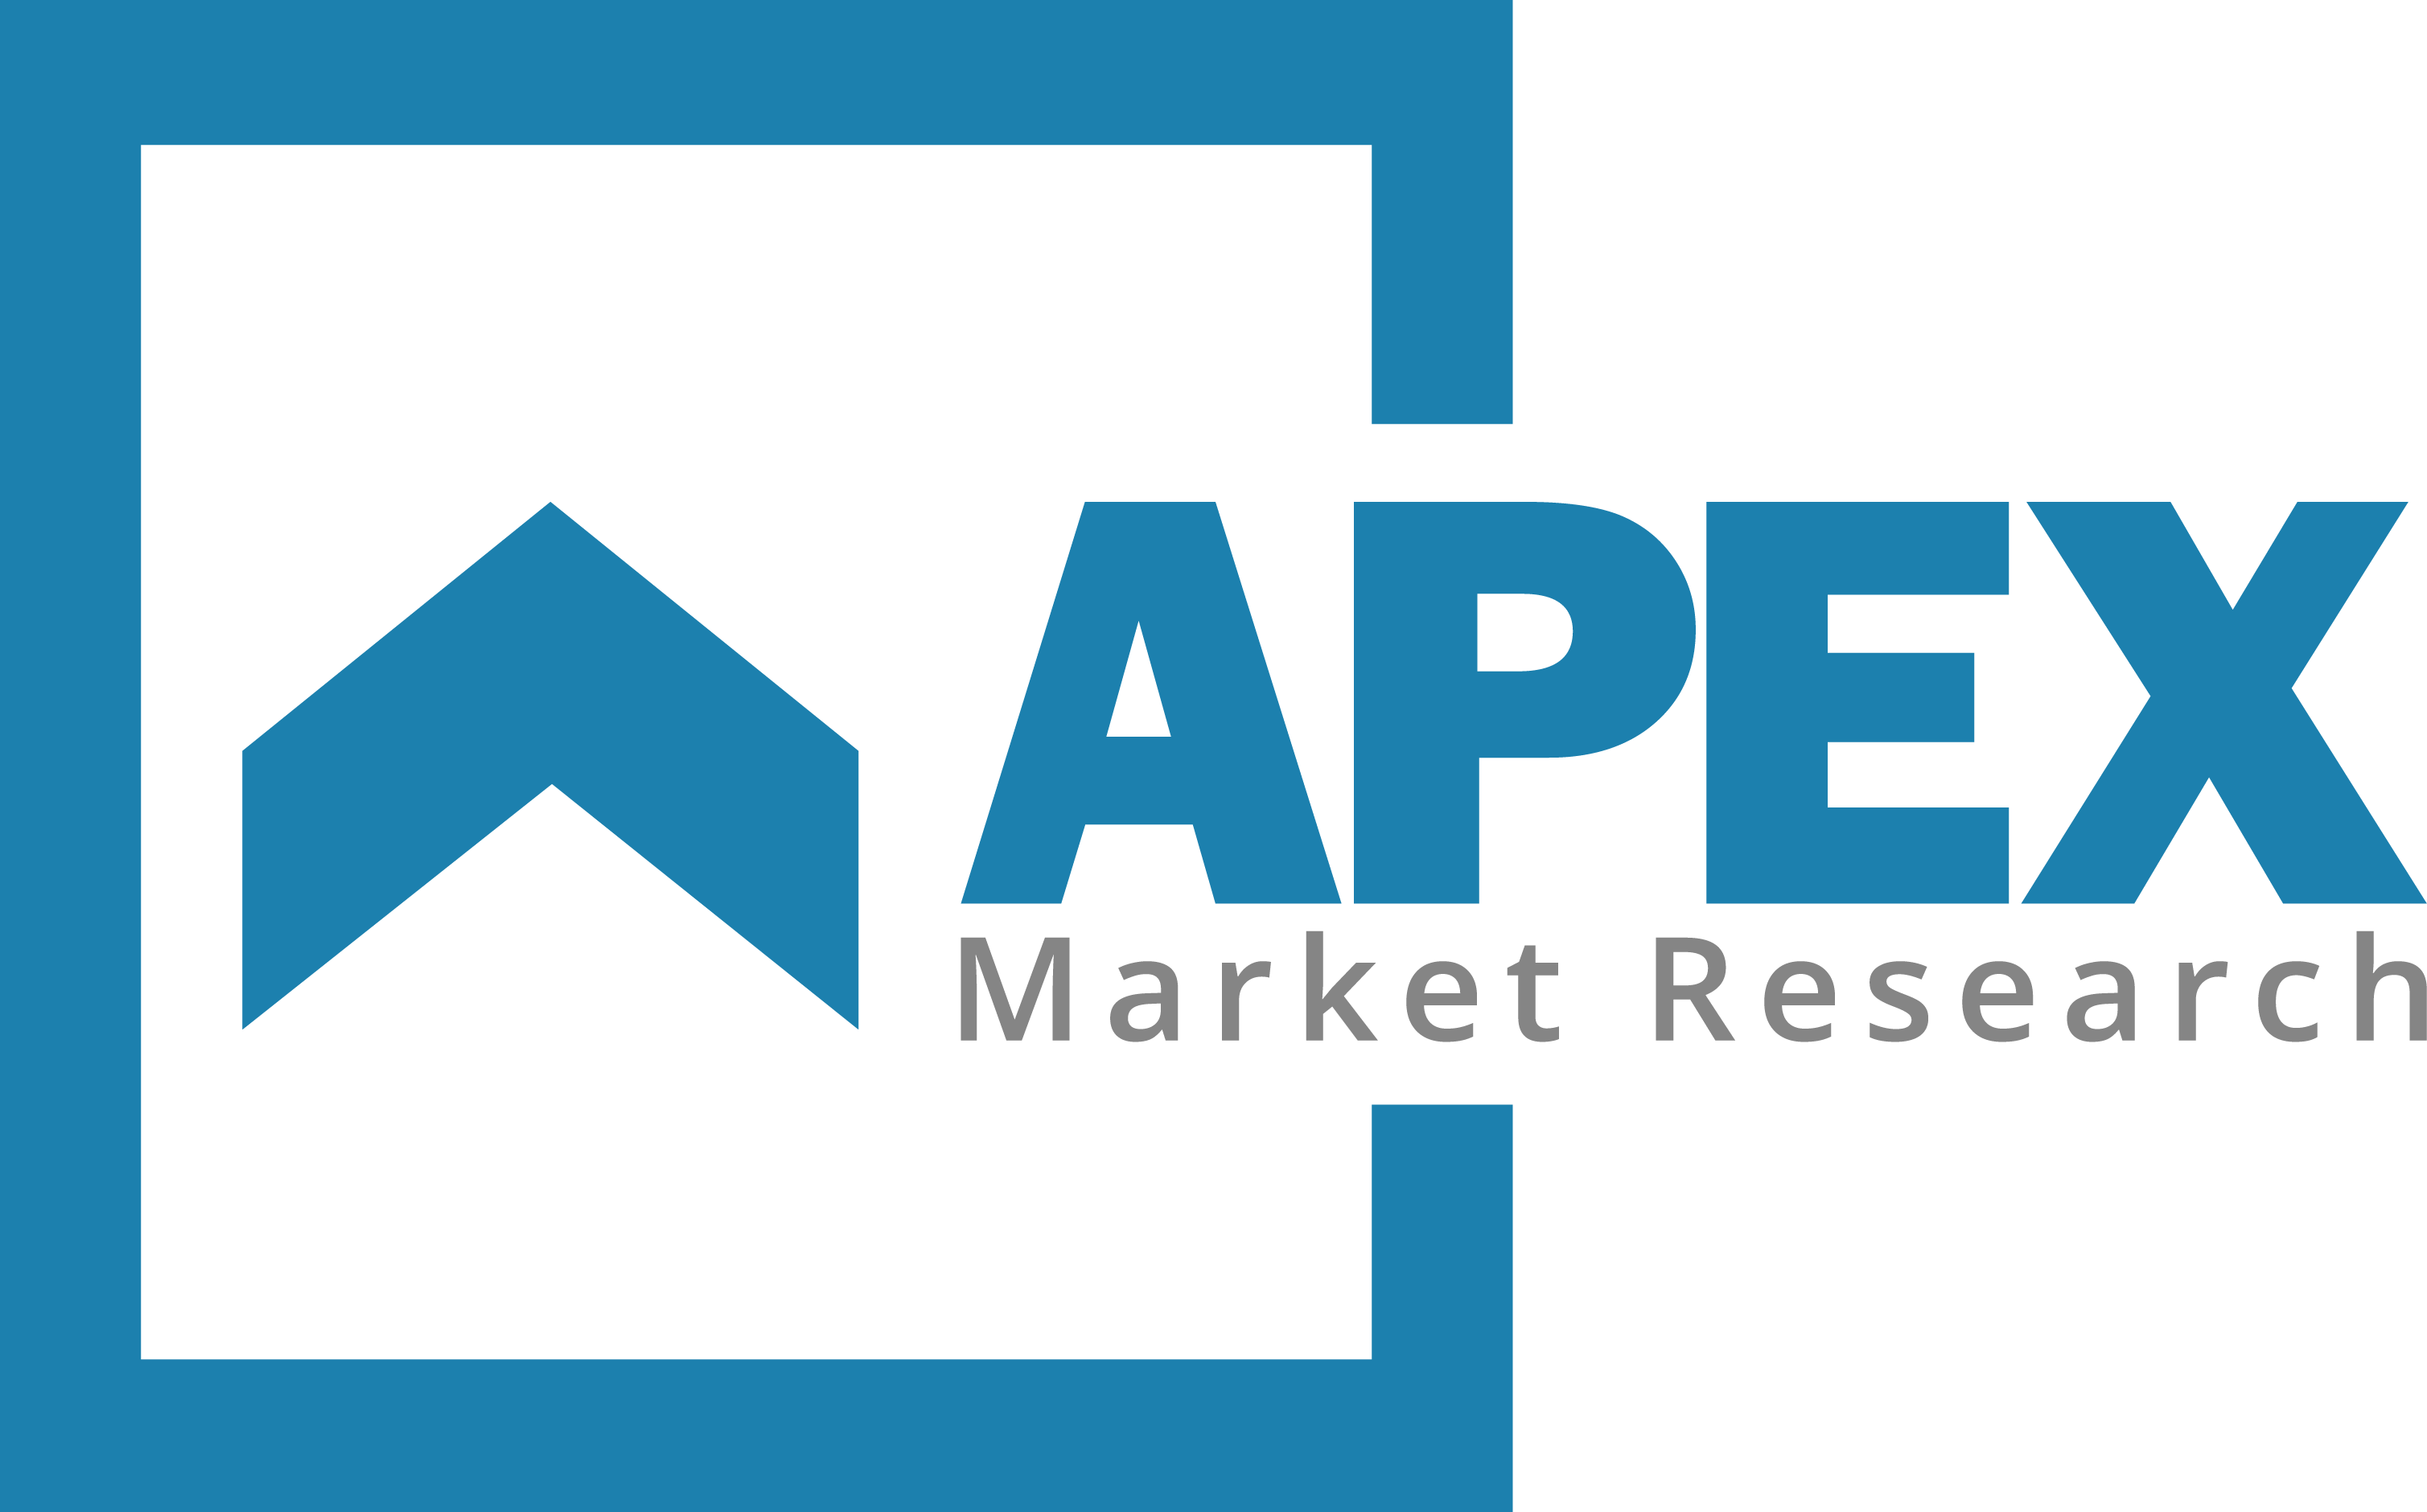 Apex Market Research